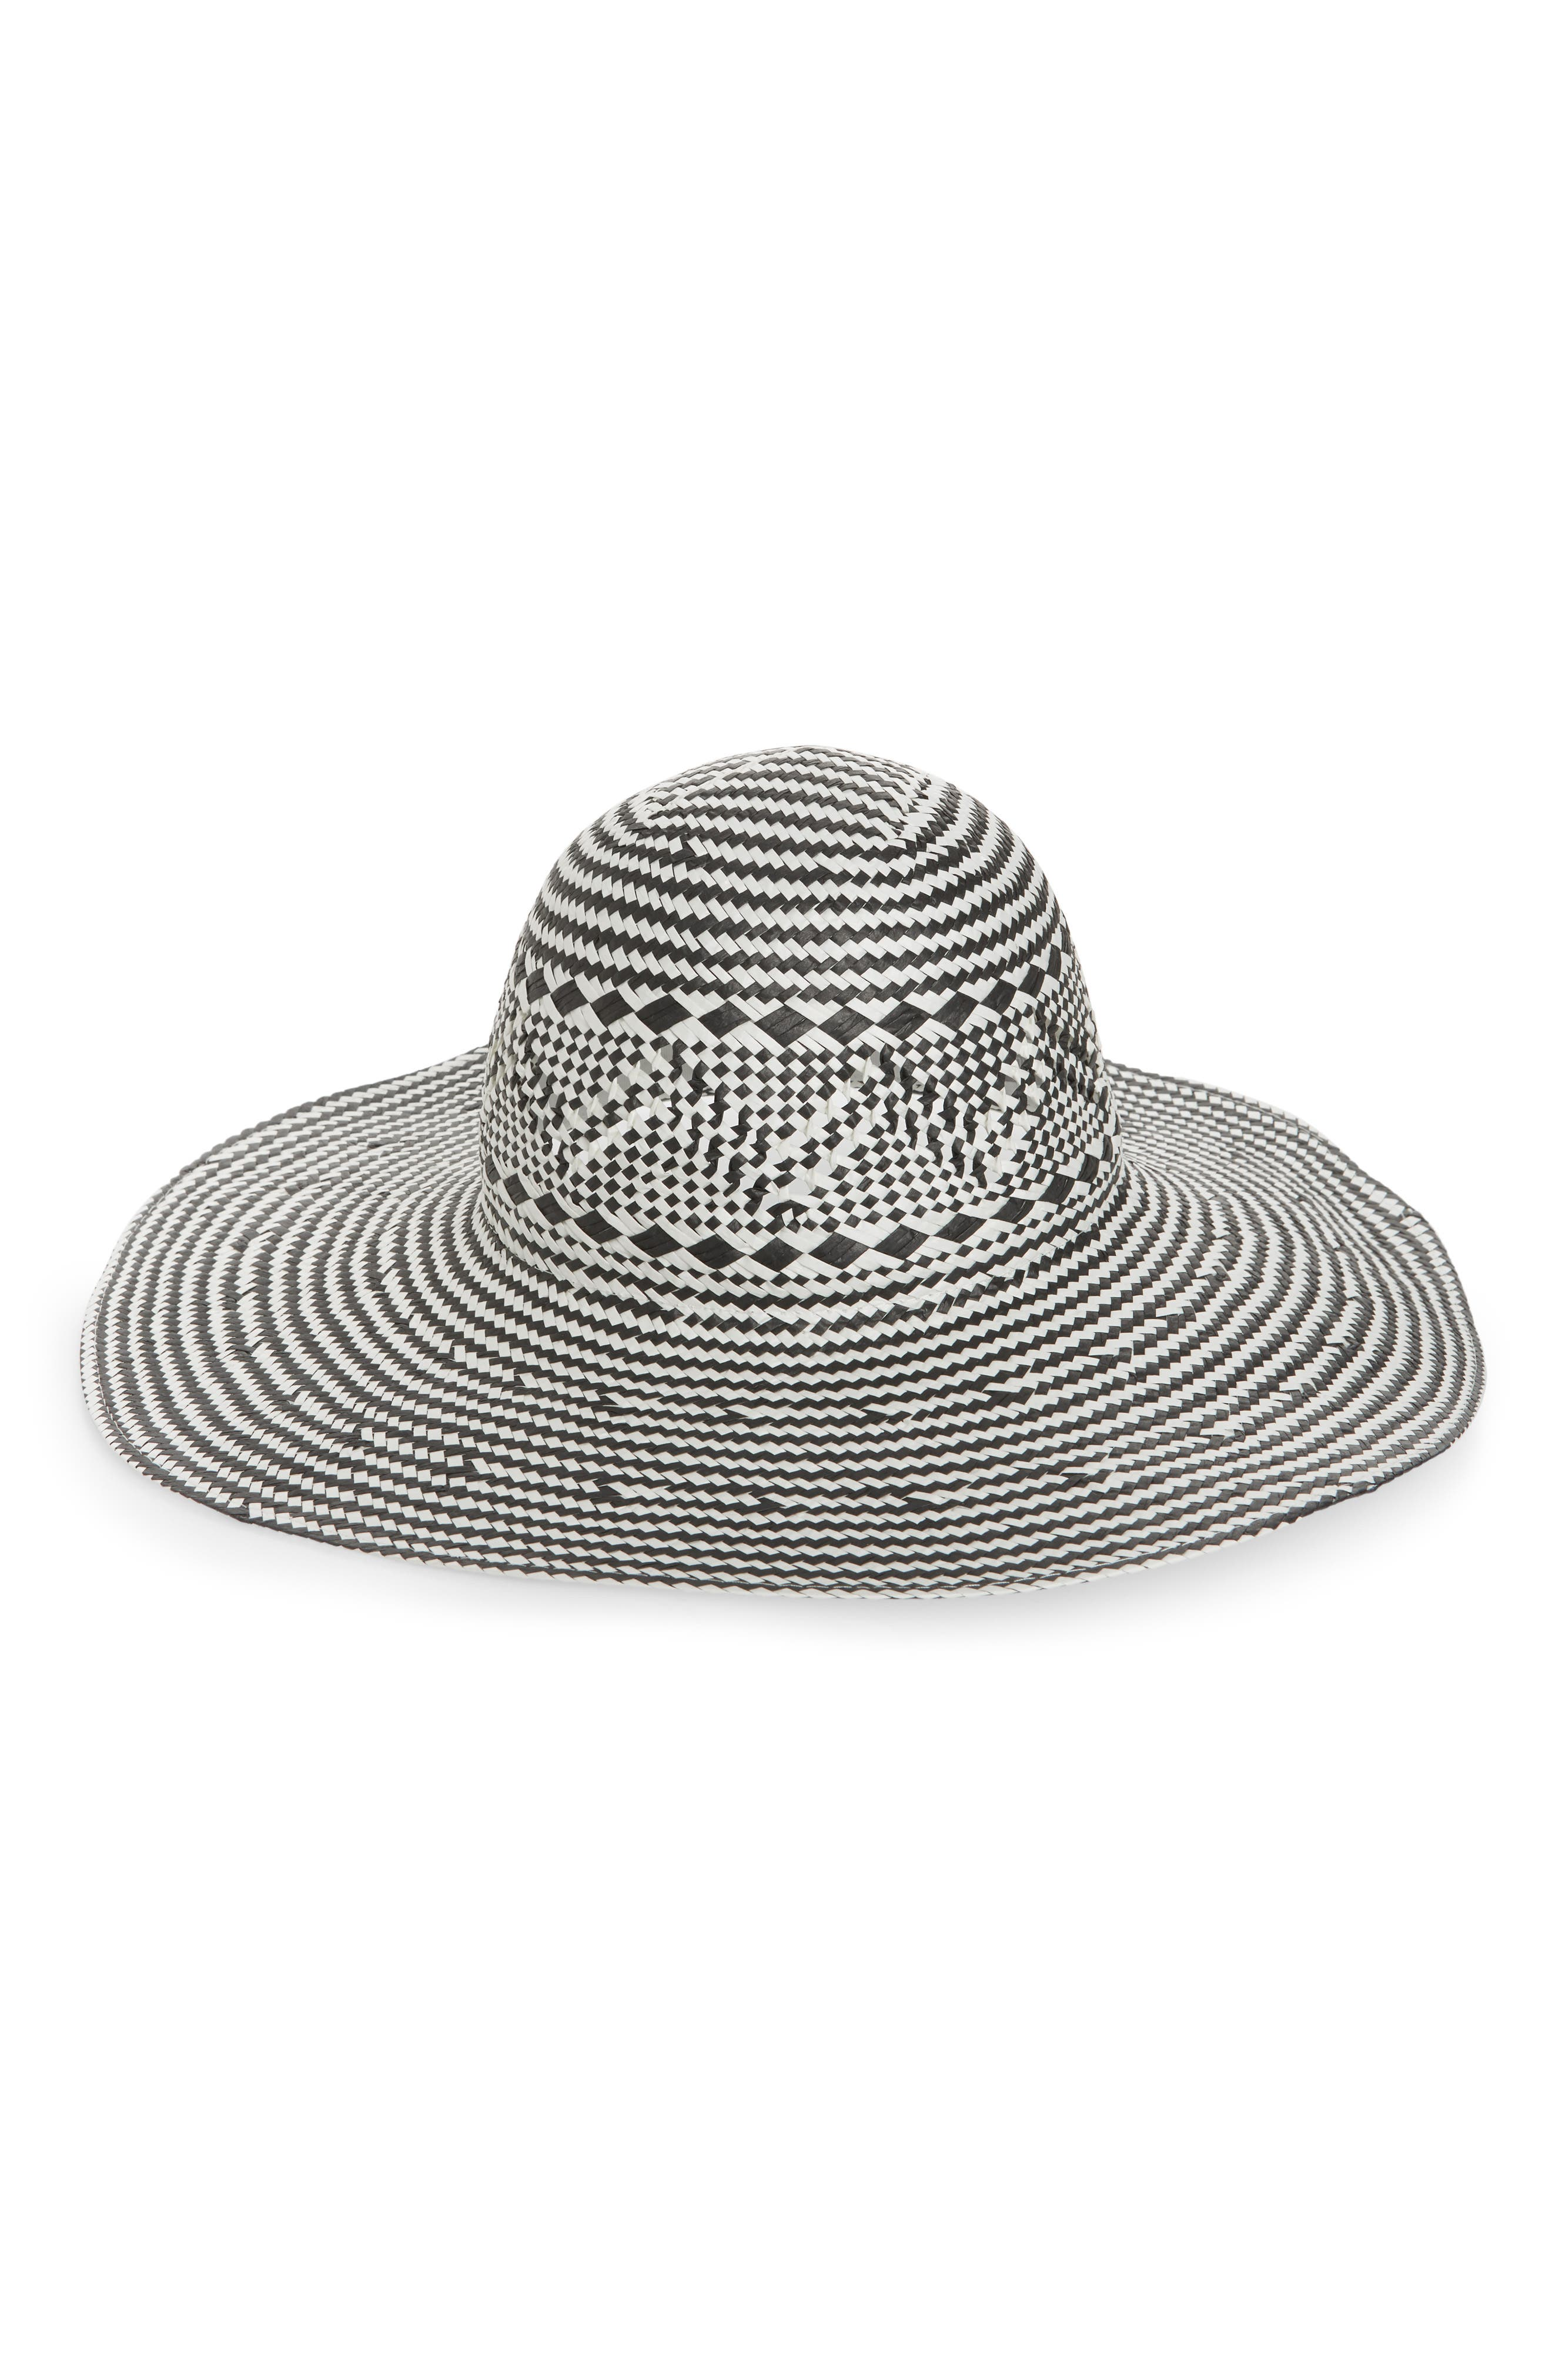 Alternate Image 1 Selected - Nordstrom Two-Tone Floppy Straw Hat